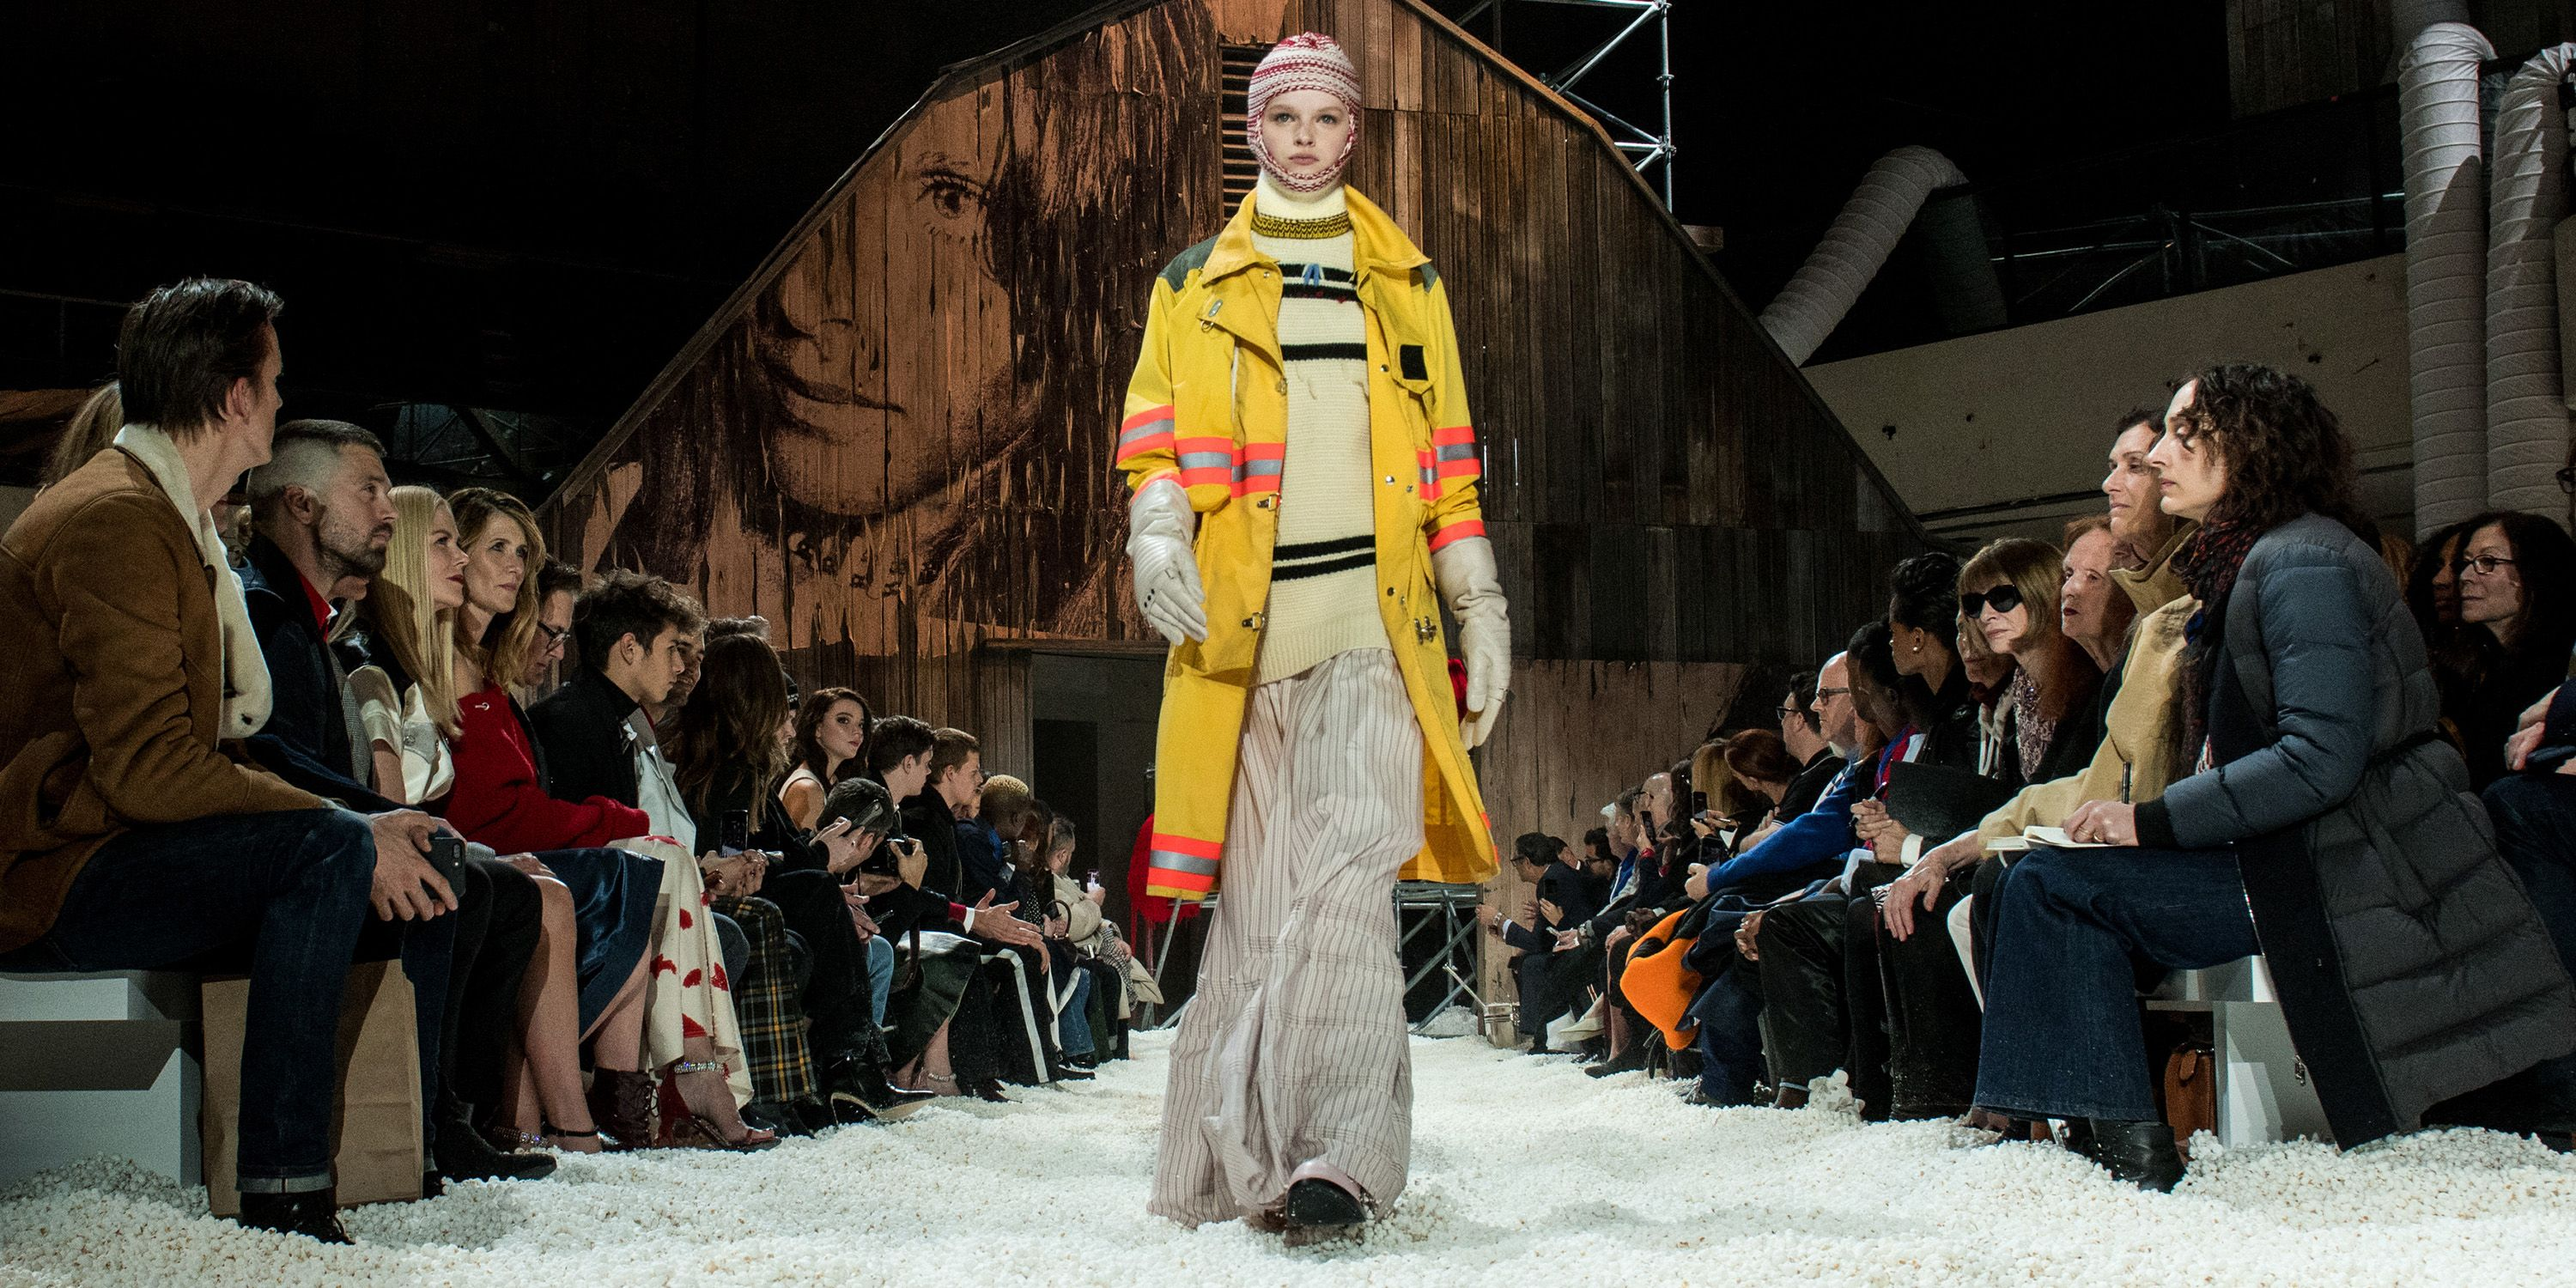 f326d1ae Calvin Klein Runway of Popcorn Fall 2018 - Calvin Klein Popcorn Show New  York Fashion Week